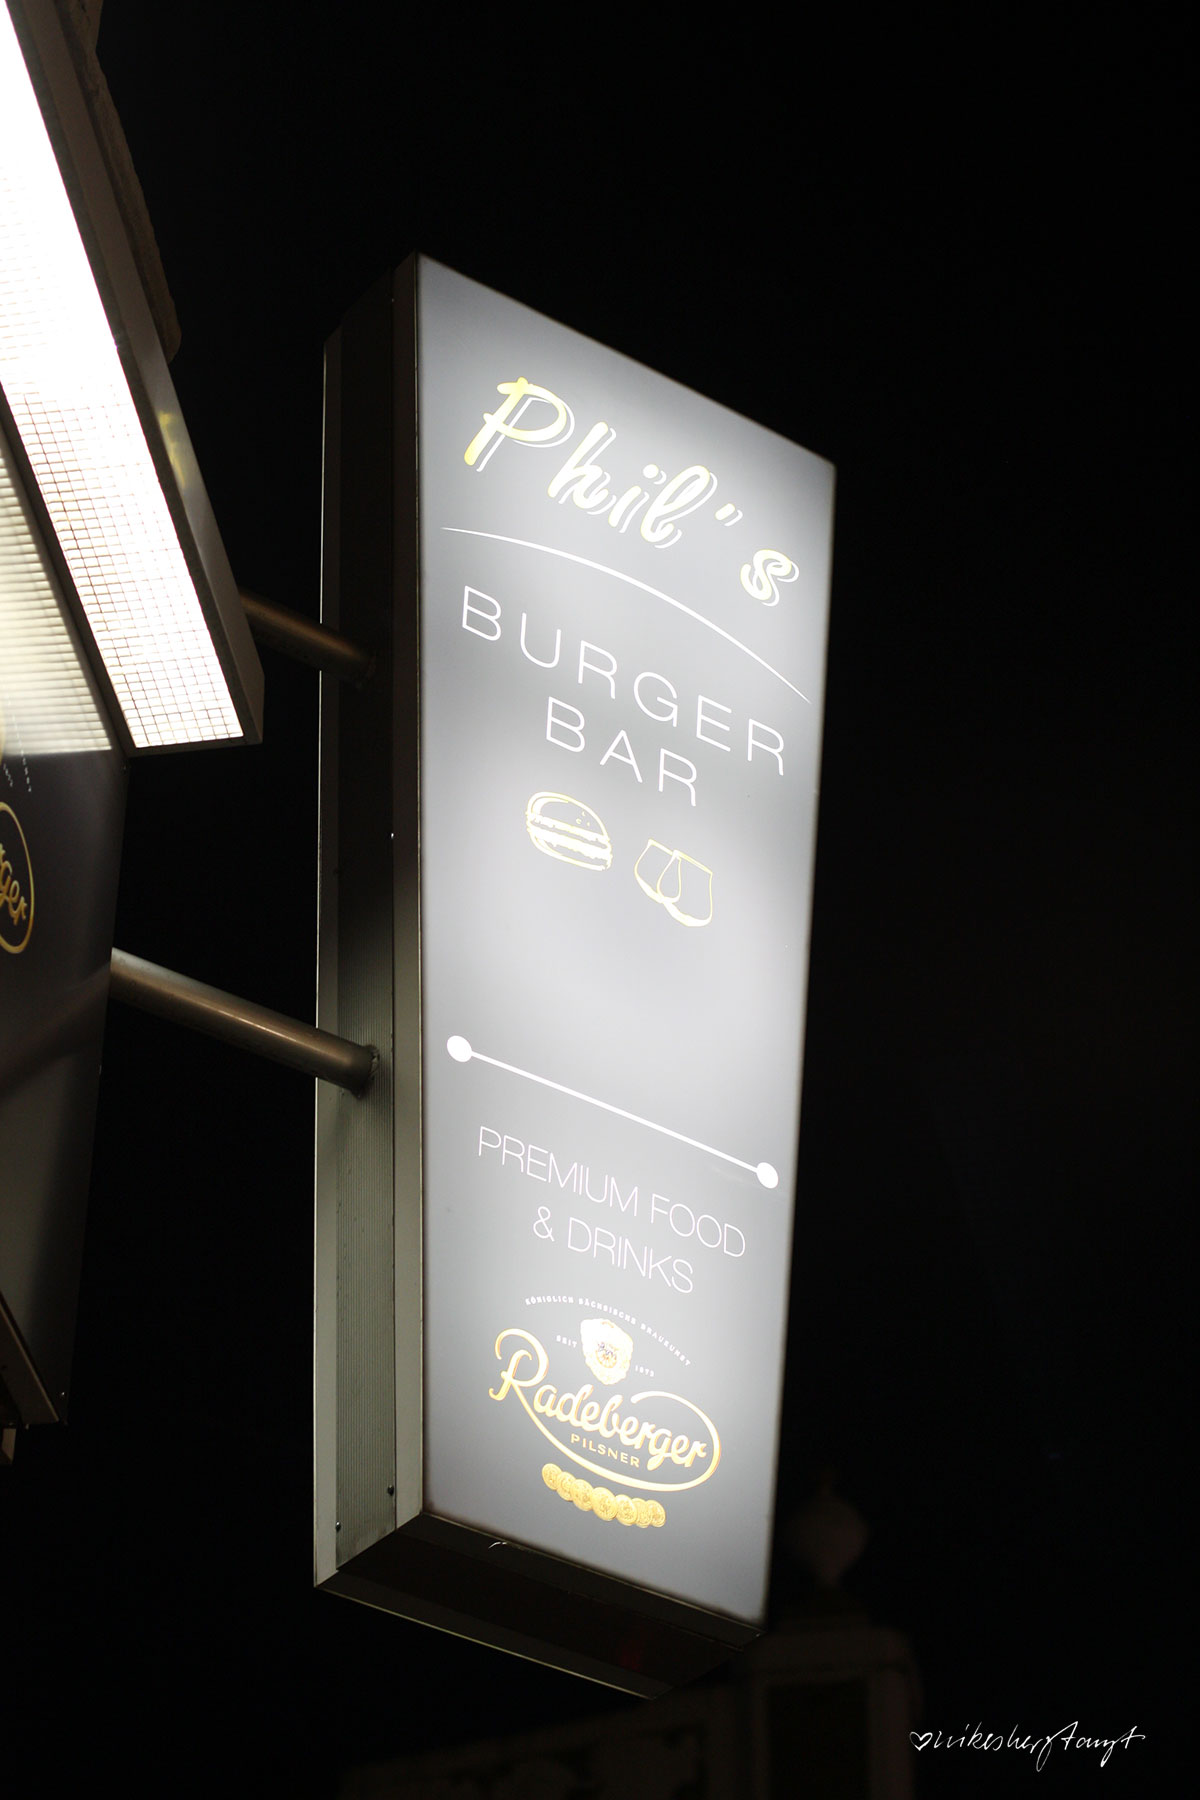 phil´s burger bar in krefeld, premium food & drinks, krefeld, #nikeskrefeld, beste burger, essen gehen in krefeld, food, blog